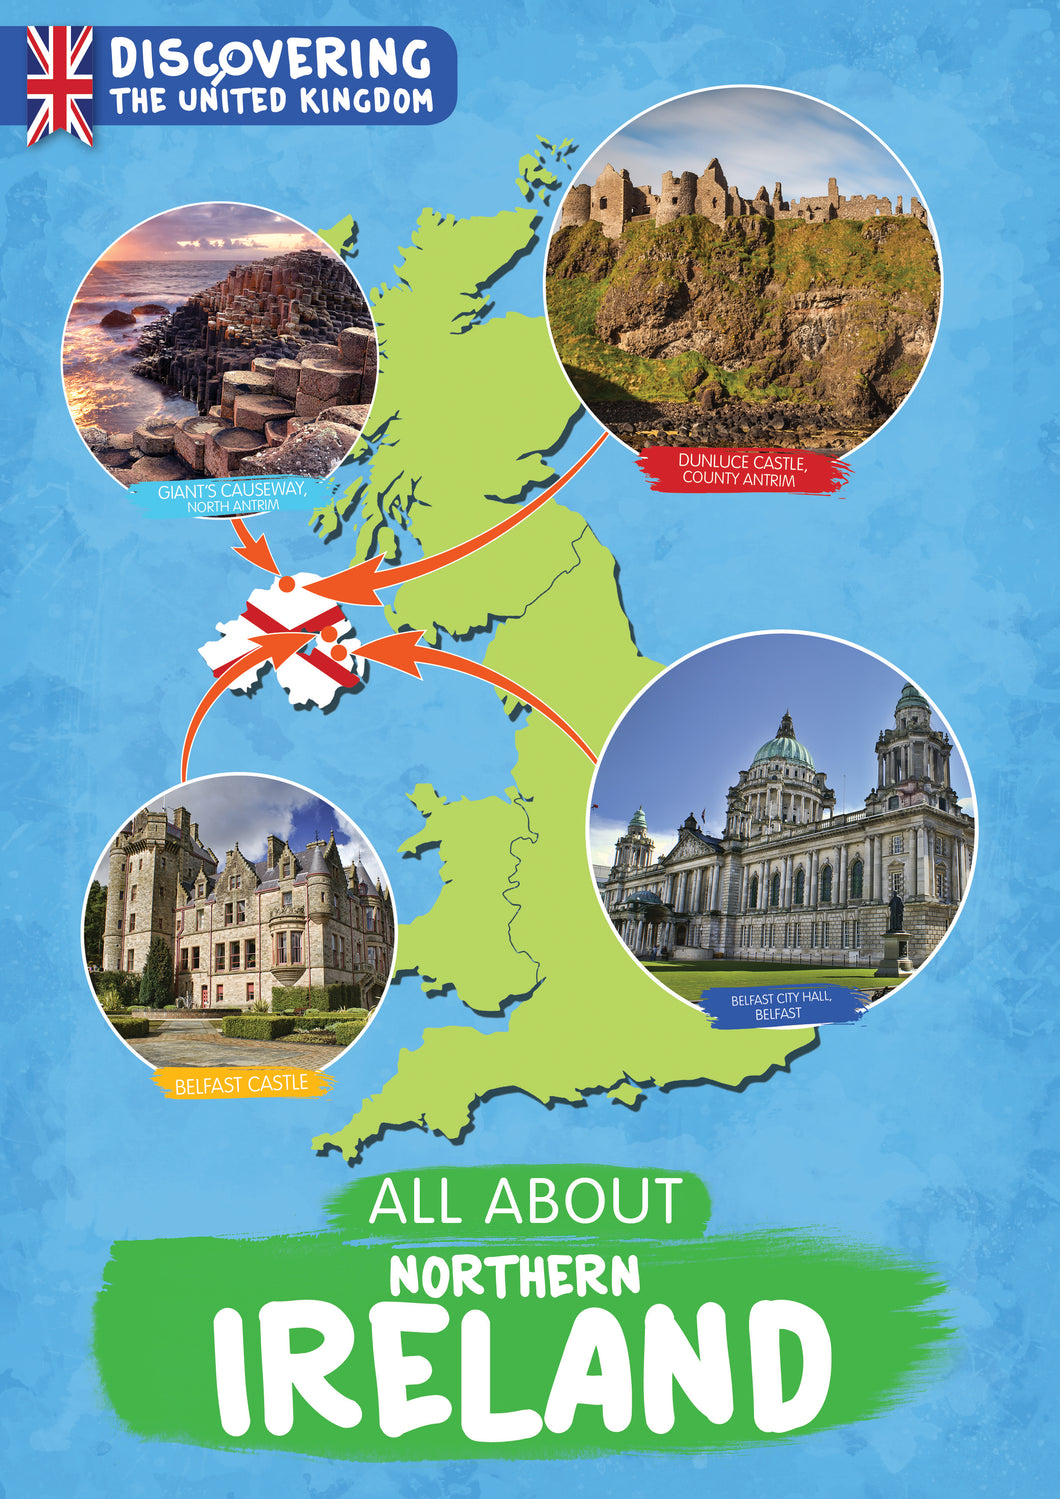 Discovering the United Kingdom: All About Northern Ireland e-Book